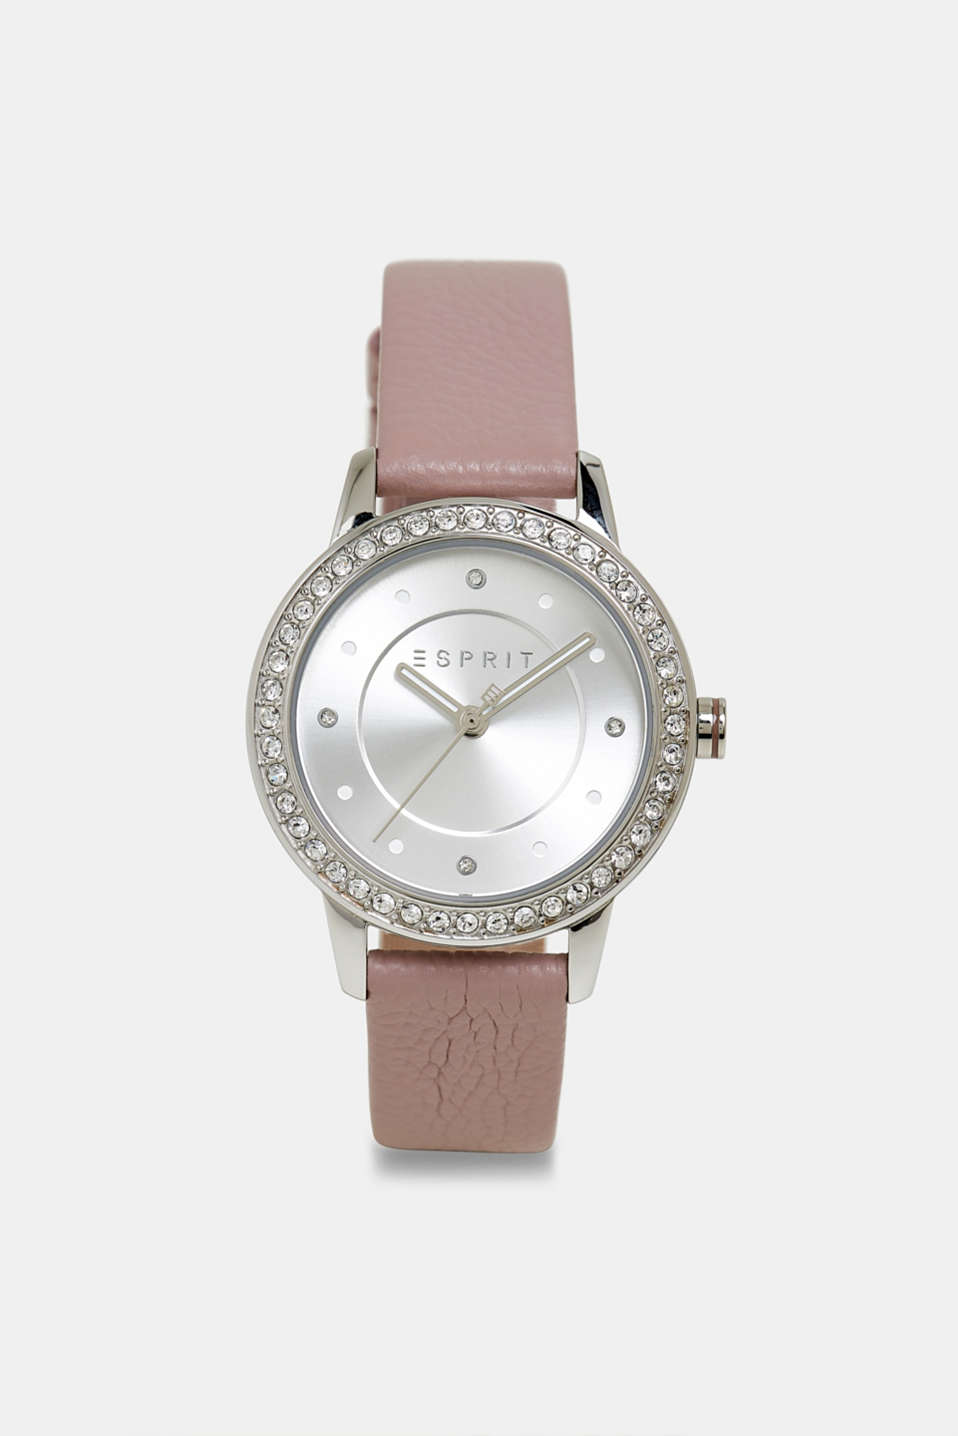 Esprit - Stainless-steel watch with zirconia and leather strap